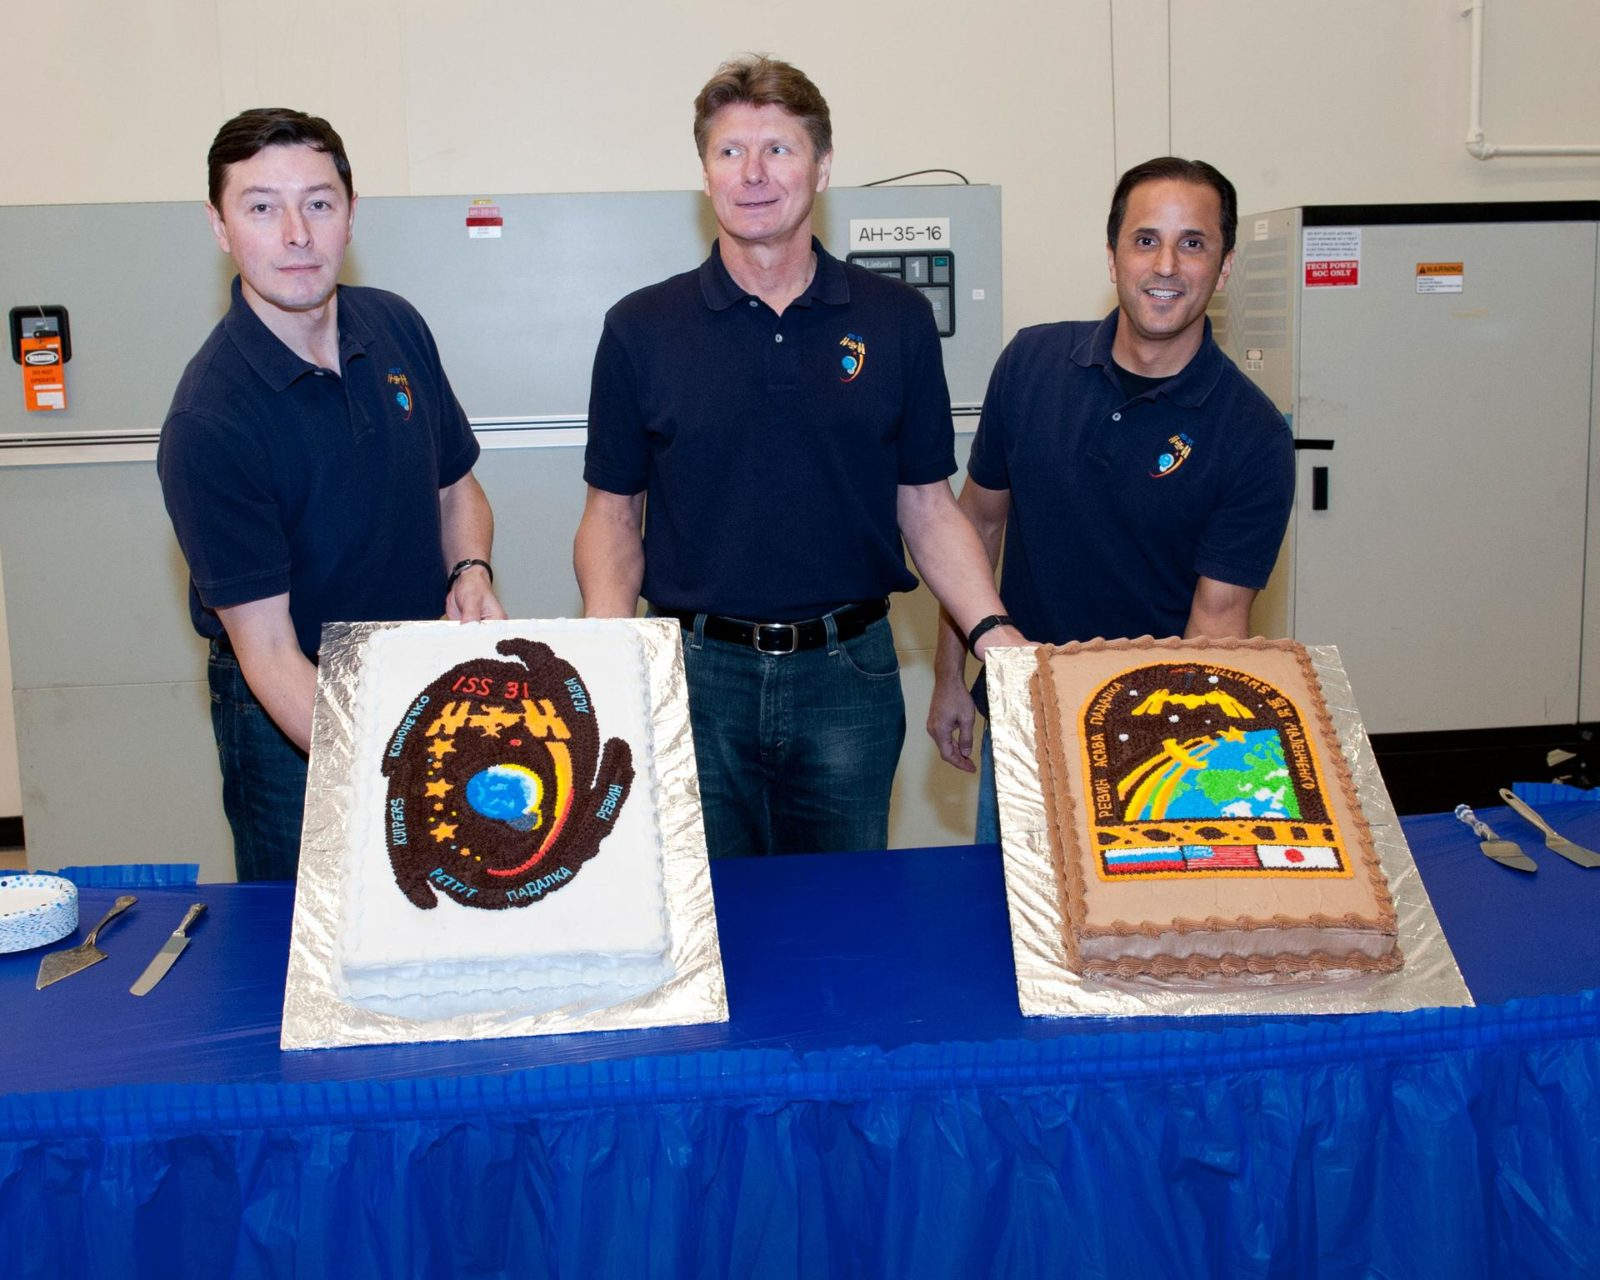 PHOTO DATE:  18 January 2012 LOCATION: Bldg. 5s, High Bay & Bldg. 9NW - ISS Mockups at SVMTF SUBJECT: Expedition 31 crew during cake cutting ceremony and Expedition 31/32 in ISS training mockup. PHOTOGRAPHER: Tom Murray - United Space Alliance jsc2012e020142